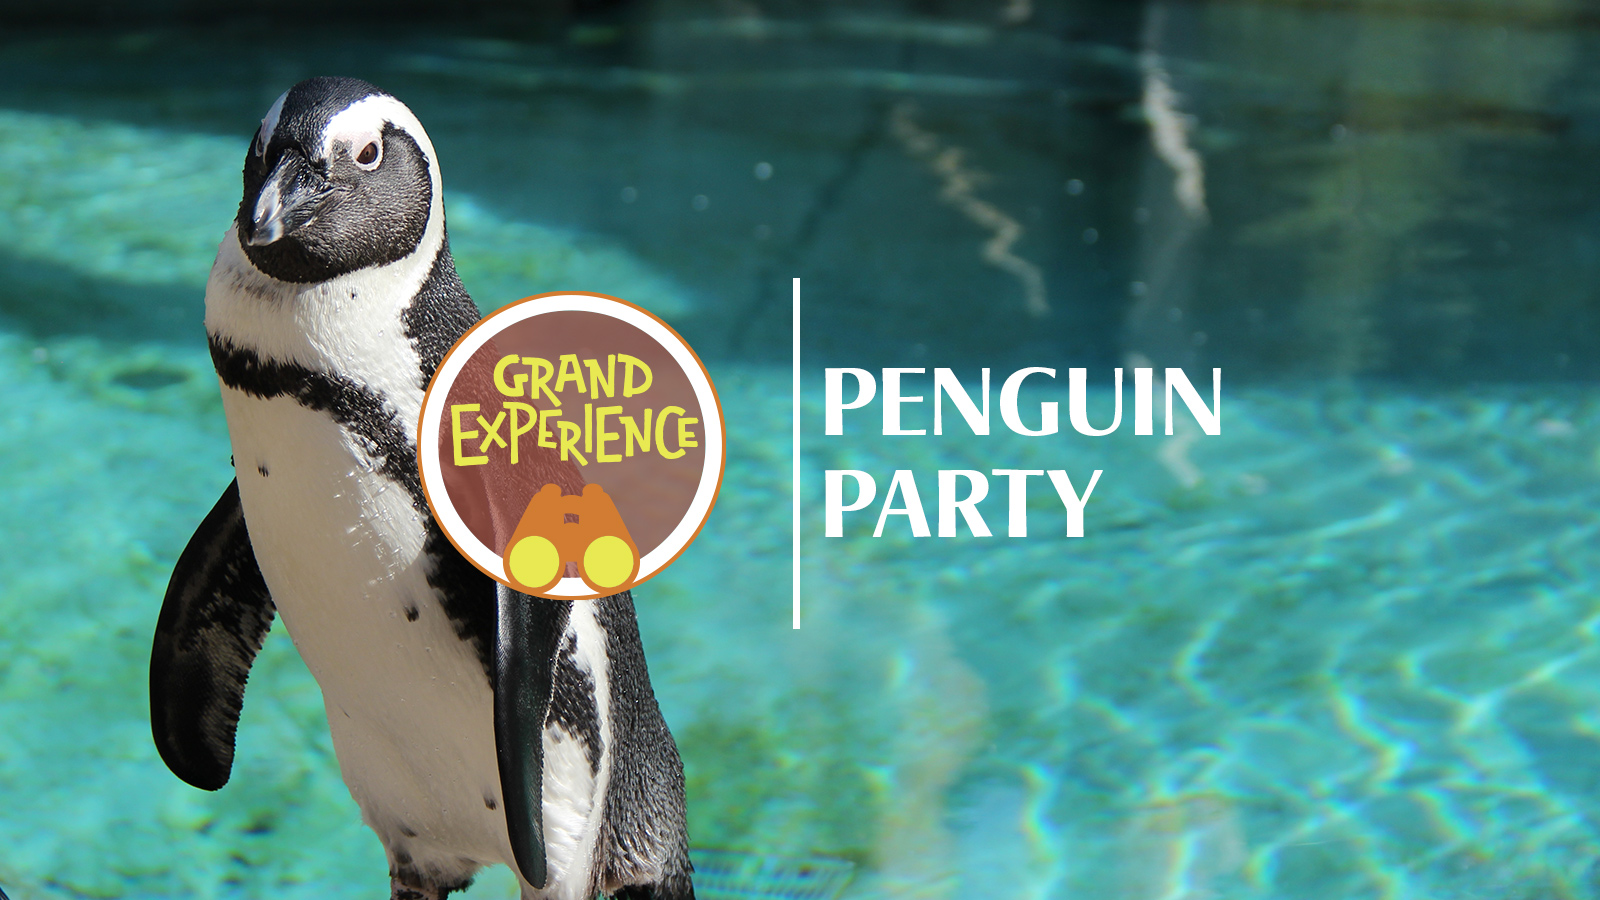 Grand Experience: Penguin Party